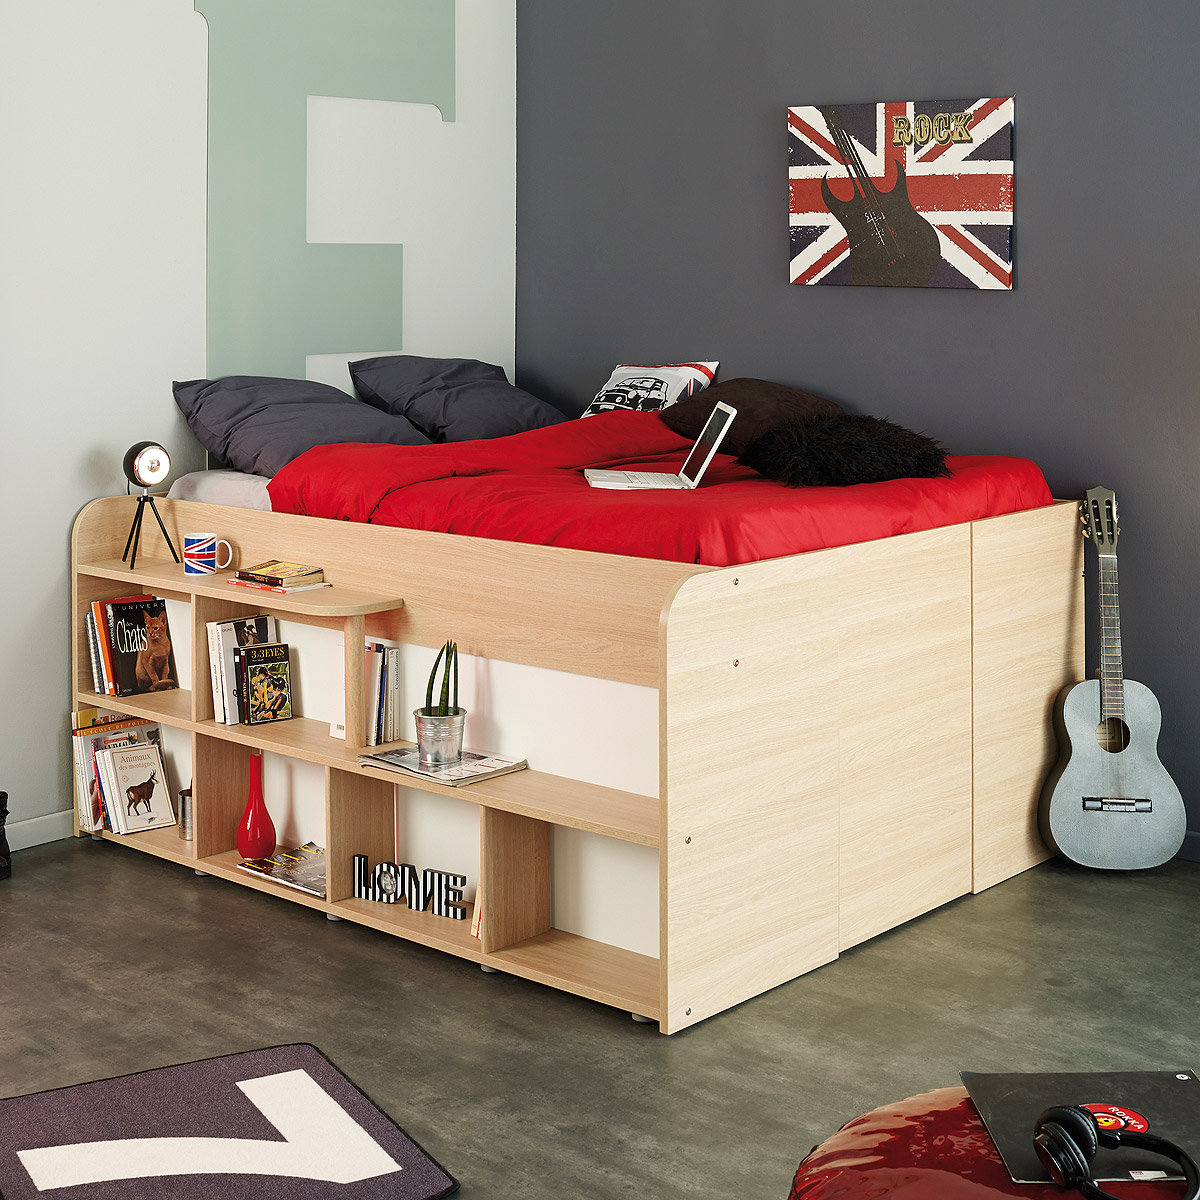 hochbett space up bett in baltimore eiche mit stauraum und hydraulik 140x200 ebay. Black Bedroom Furniture Sets. Home Design Ideas